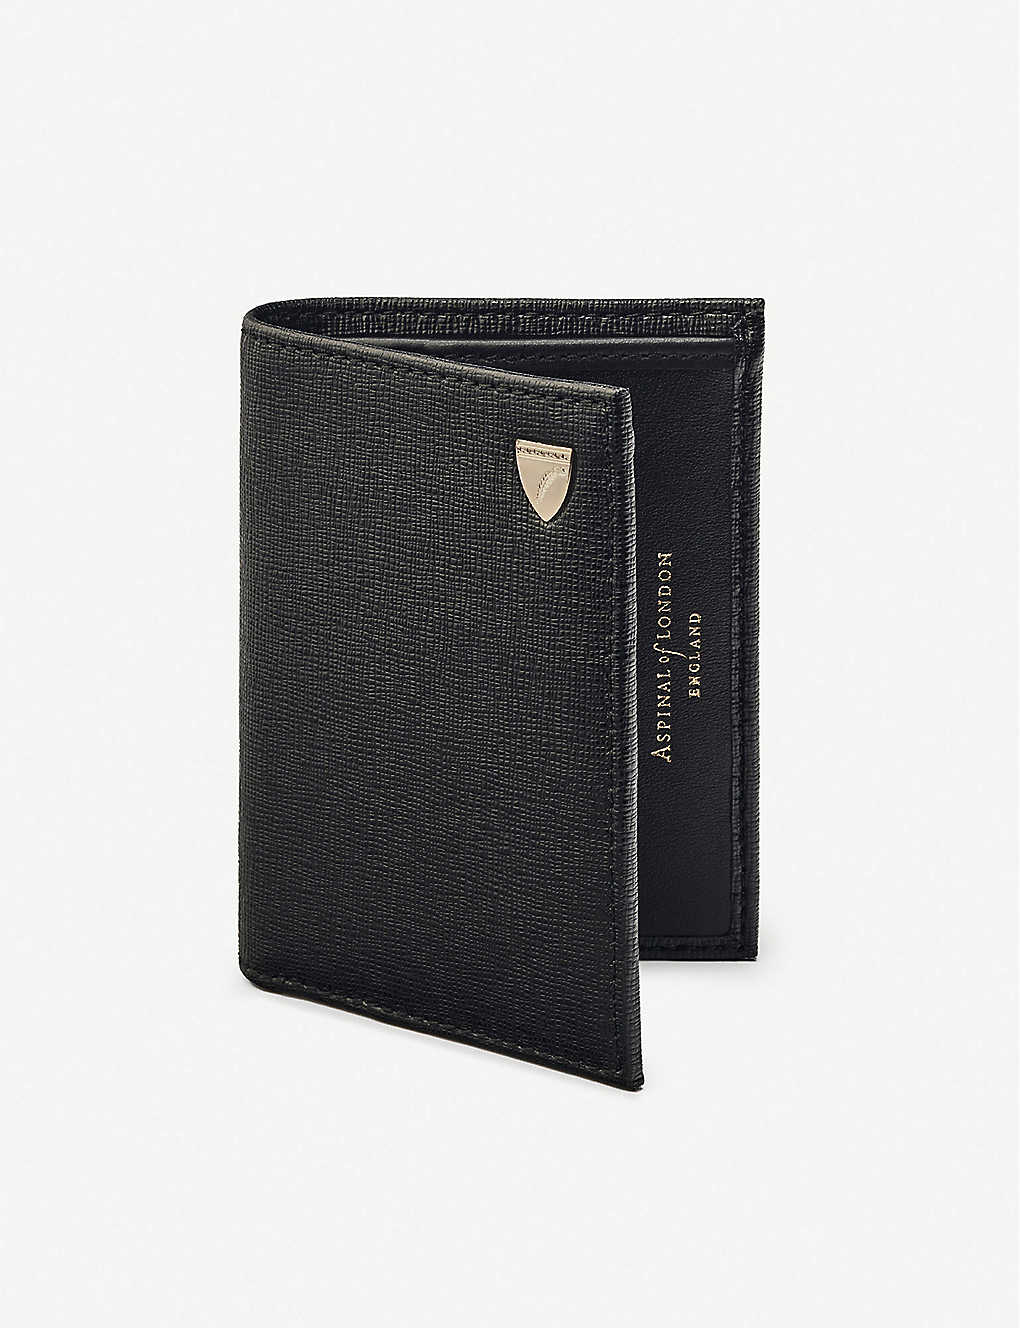 ASPINAL OF LONDON: Pocket & Shield saffiano leather card holder wallet